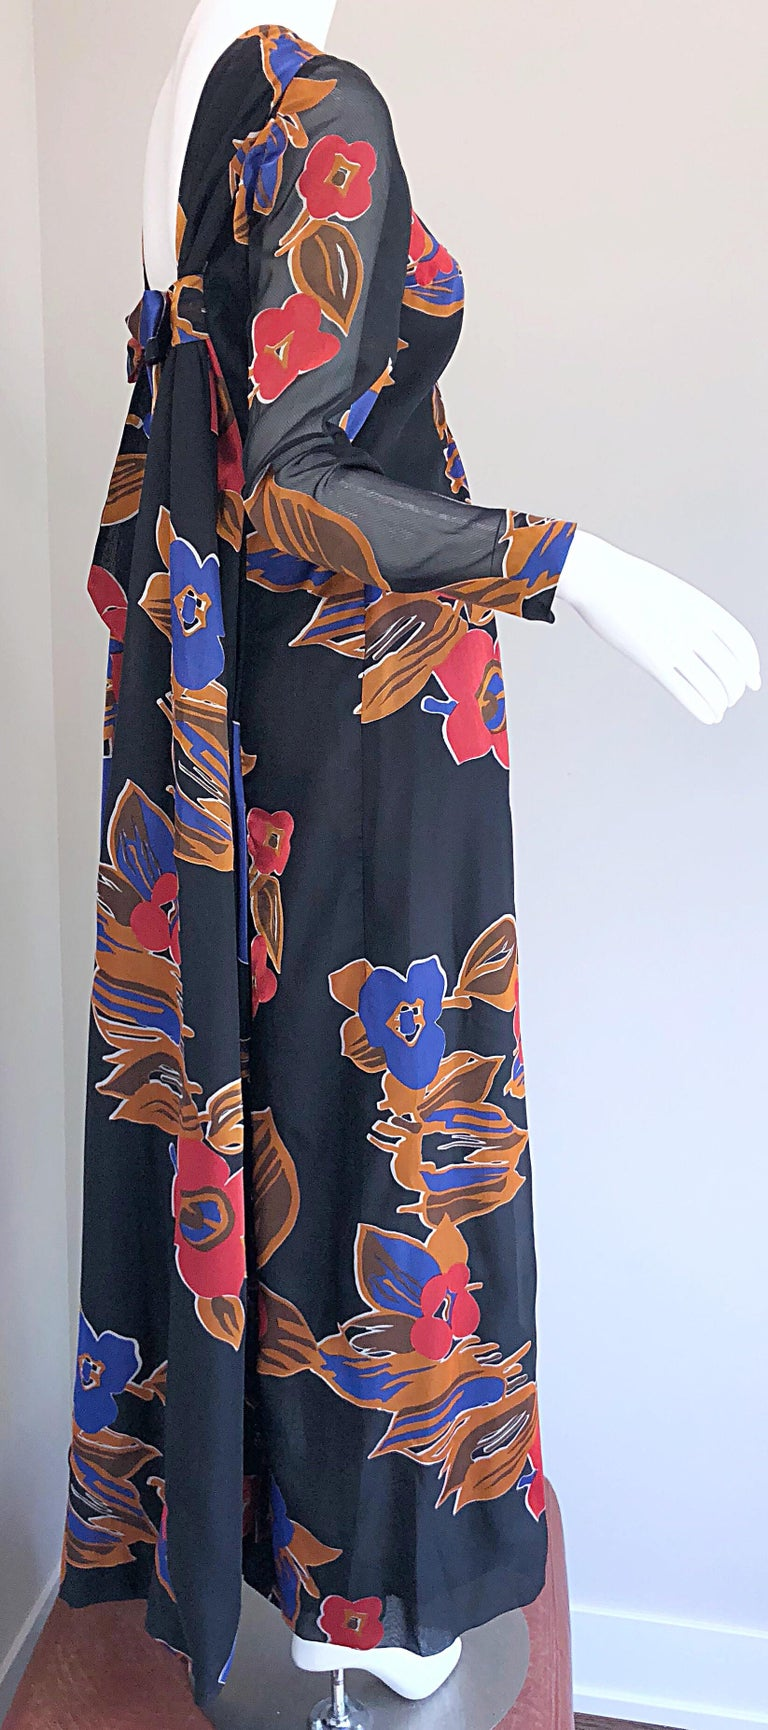 1960s John Boyle Bishop Black + Brown + Red Abstract Trained 60s Gown Maxi Dress For Sale 5